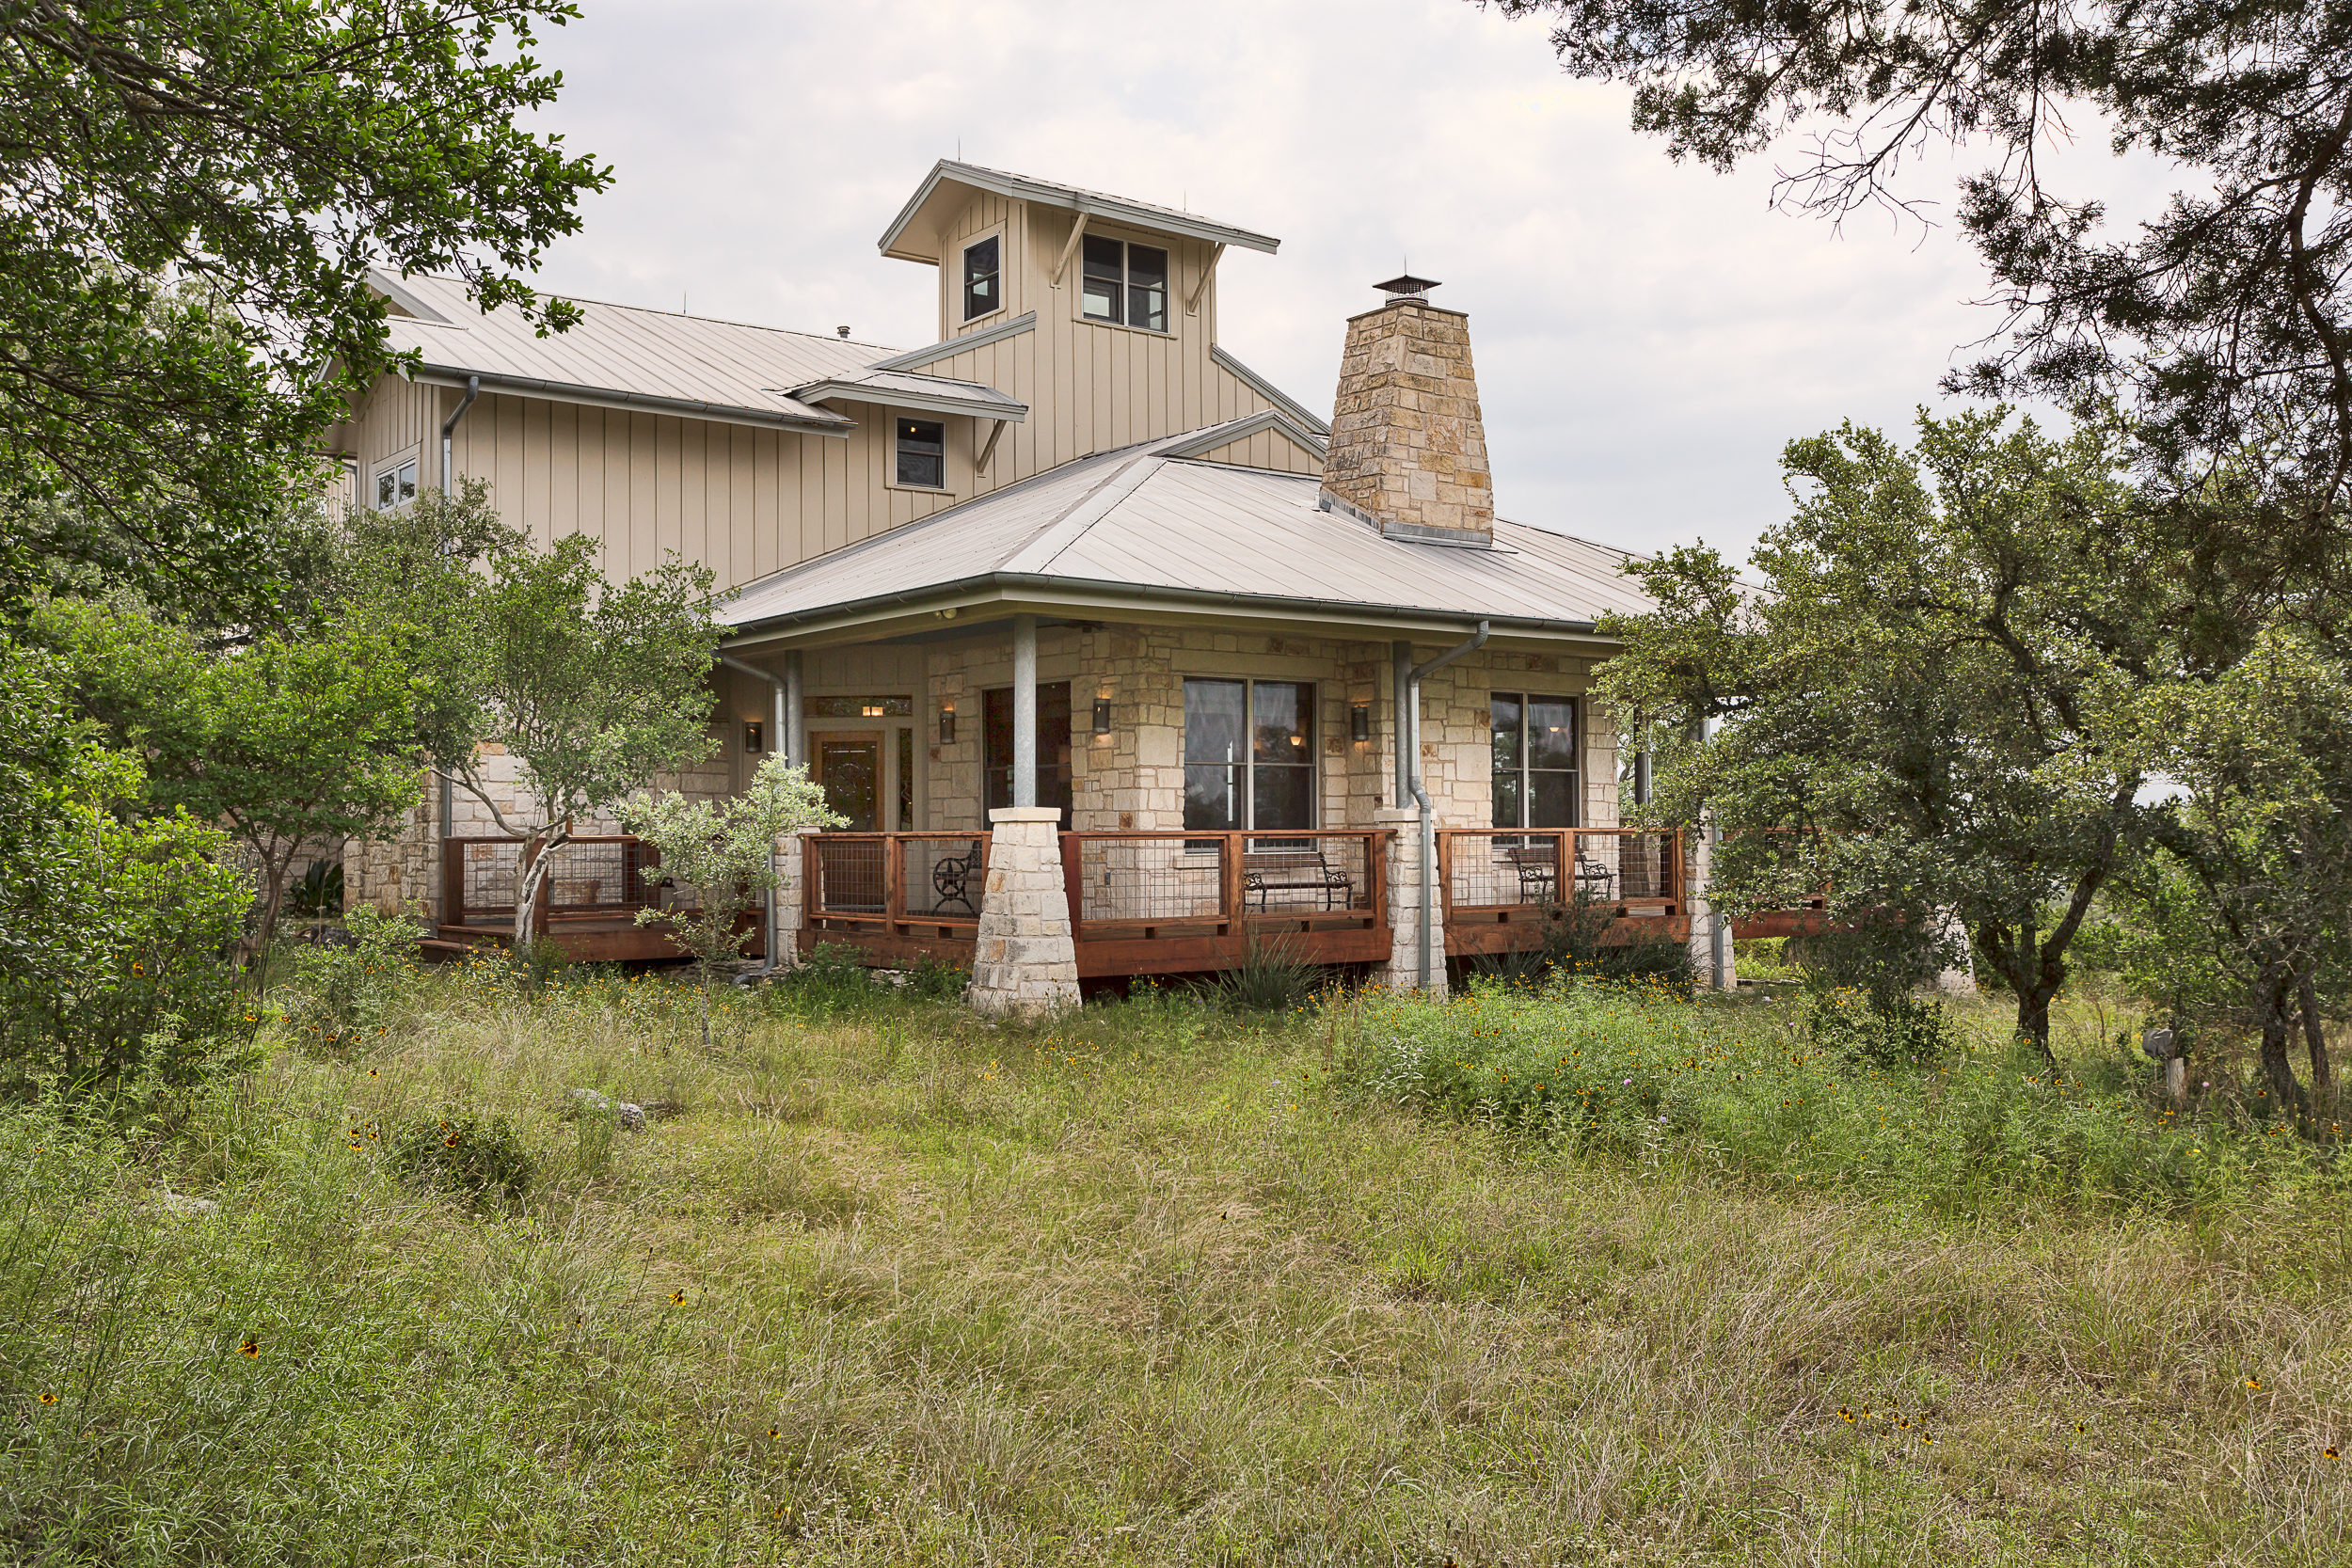 Single Family Home for Sale at Crestview Mesa Ranch 801 Hays Country Acres Rd Dripping Springs, Texas 78620 United States